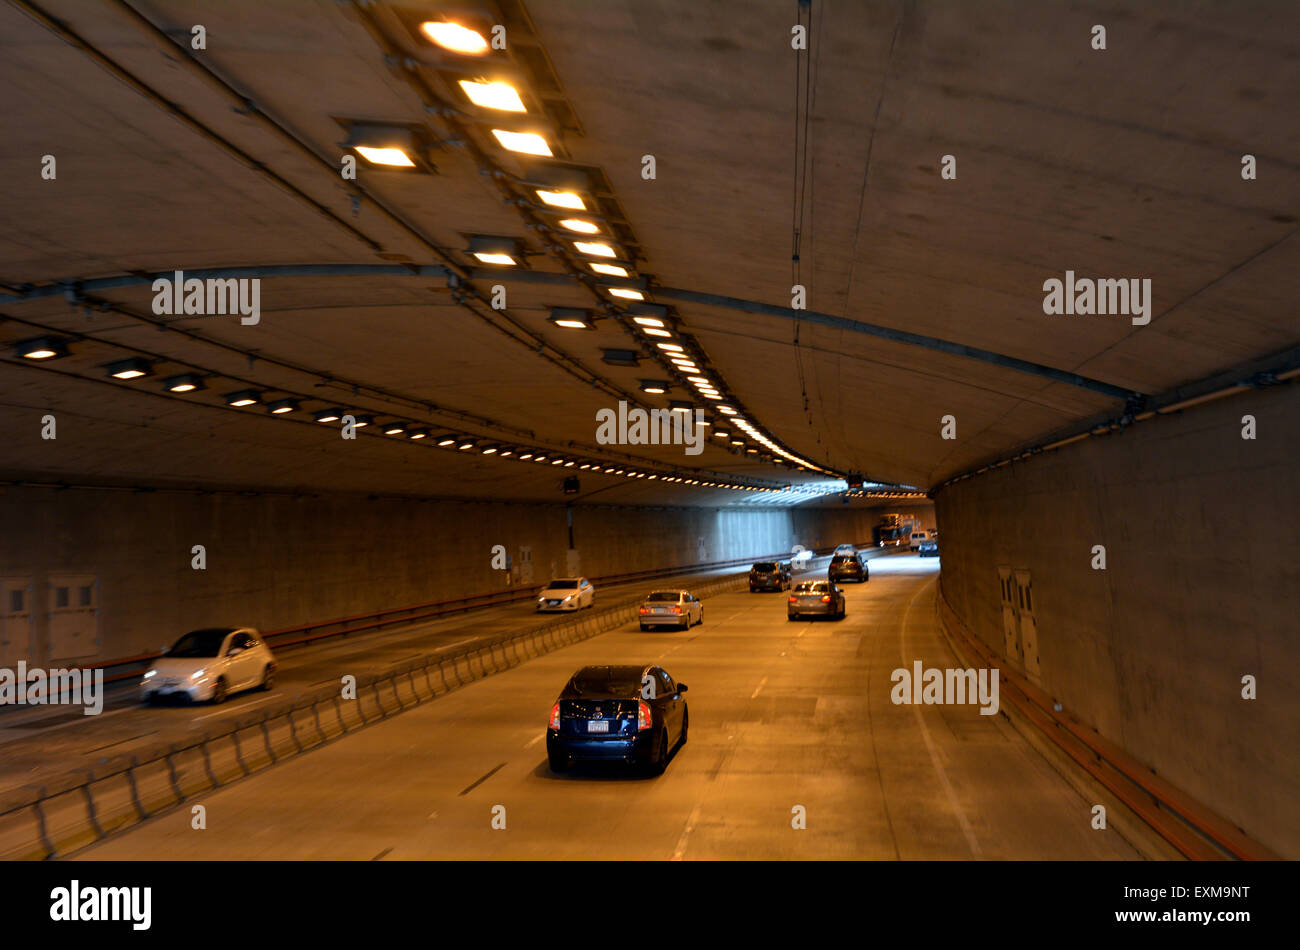 Parkway Traffic Stock Photos & Parkway Traffic Stock Images - Alamy